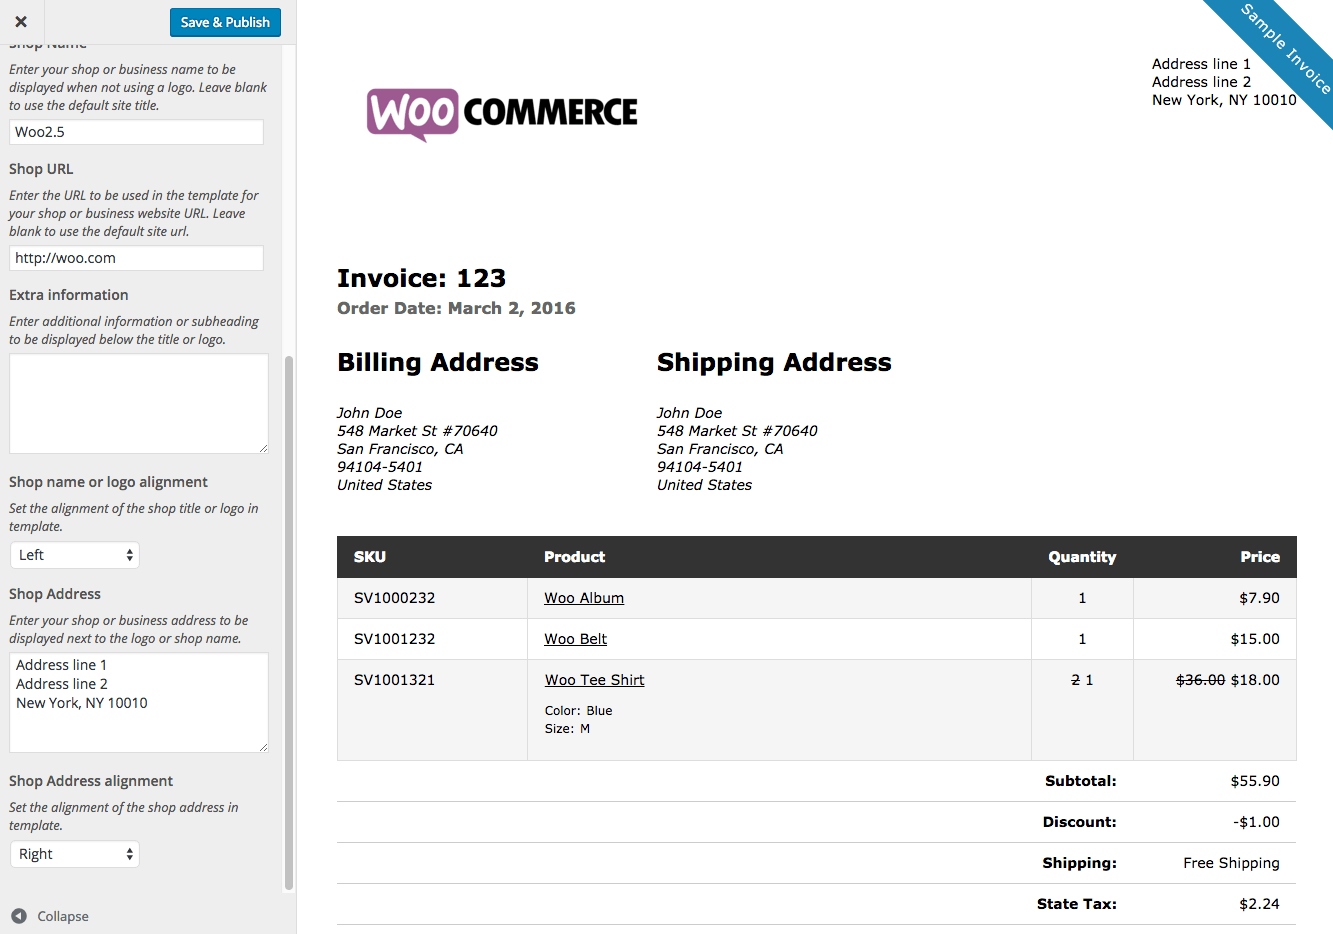 Adoringacklesus  Fascinating Print Invoices Amp Packing Lists  Woocommerce With Fair Woocommerce Print Invoices  Packing Lists Customizer With Beauteous Receipt French Translation Also Free Cash Receipts In Addition Smoothie Receipt And Receipt For Sale Of Used Car As Well As Tax Refund Receipt Additionally Handheld Receipt Scanner From Woocommercecom With Adoringacklesus  Fair Print Invoices Amp Packing Lists  Woocommerce With Beauteous Woocommerce Print Invoices  Packing Lists Customizer And Fascinating Receipt French Translation Also Free Cash Receipts In Addition Smoothie Receipt From Woocommercecom